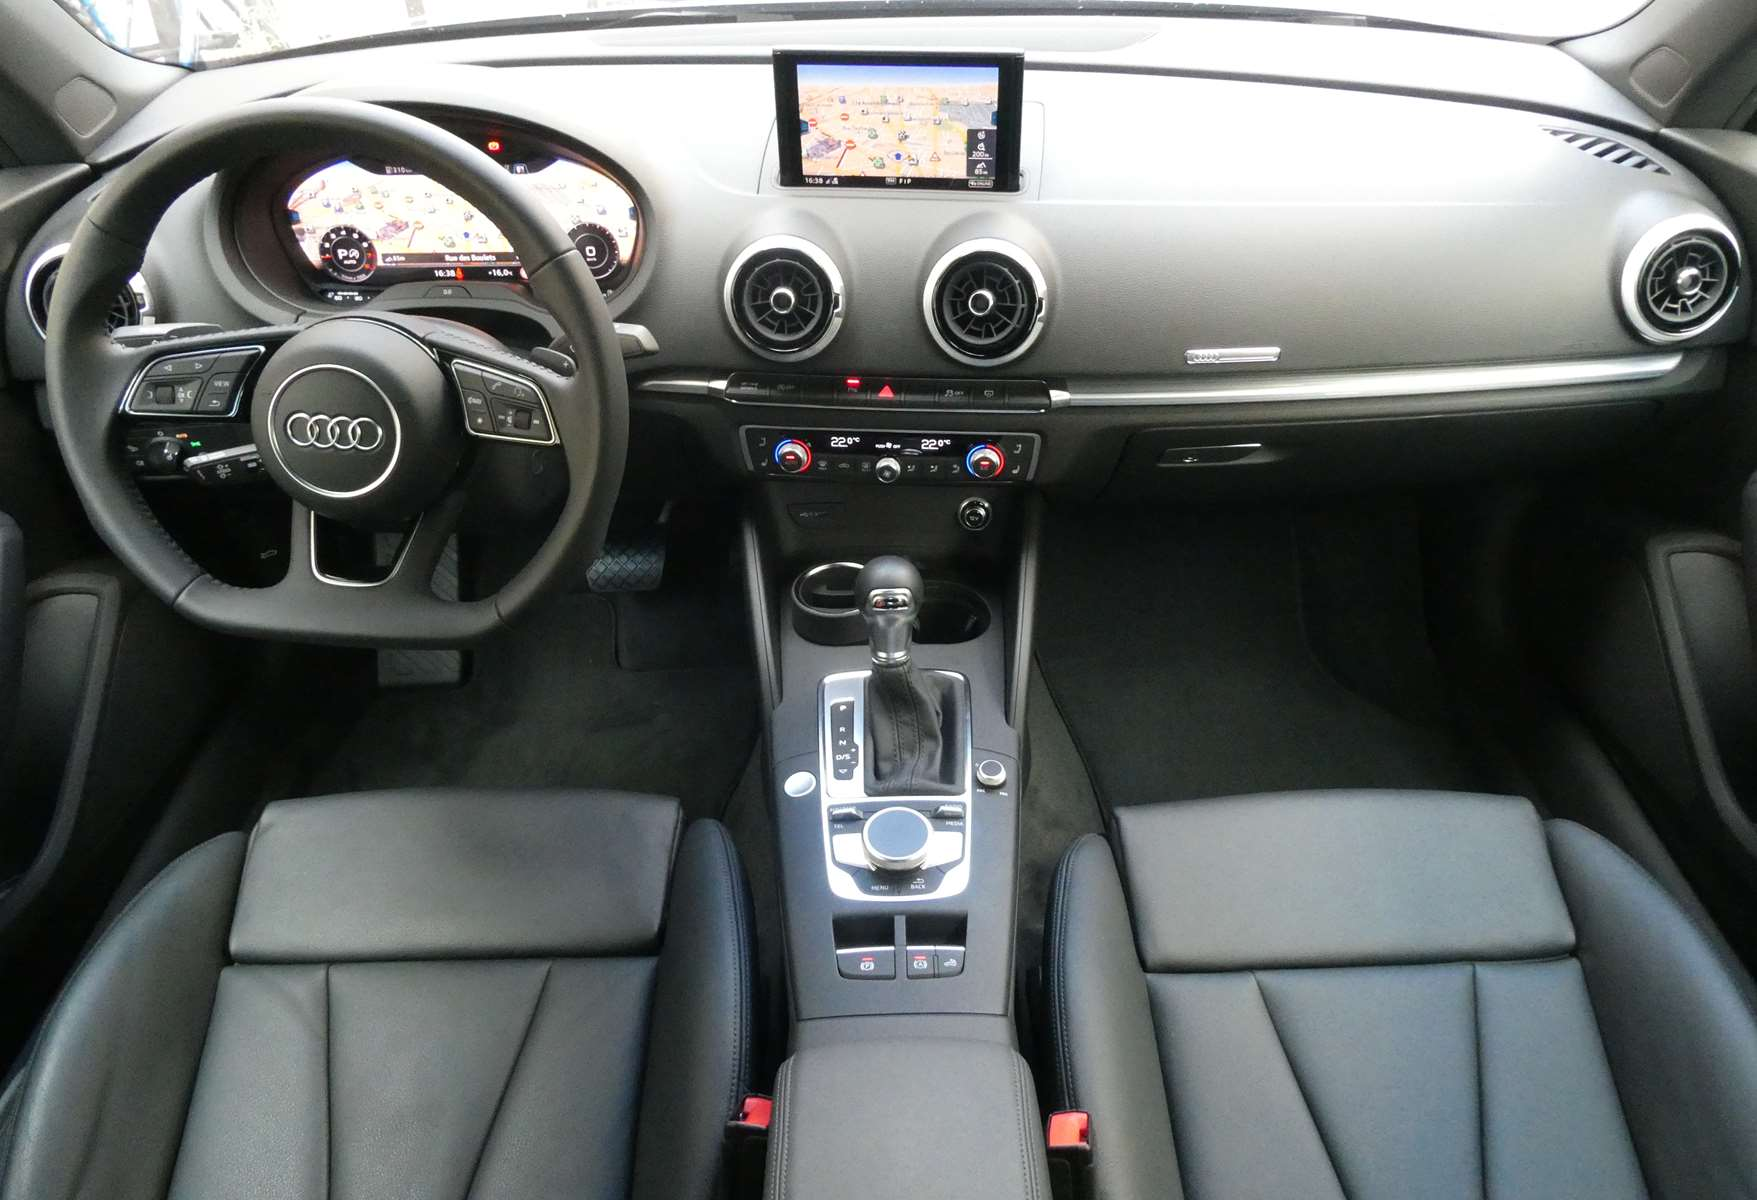 Audi A3 (2) cabriolet 35 TFSI 150 Design luxe S tronic 7 18